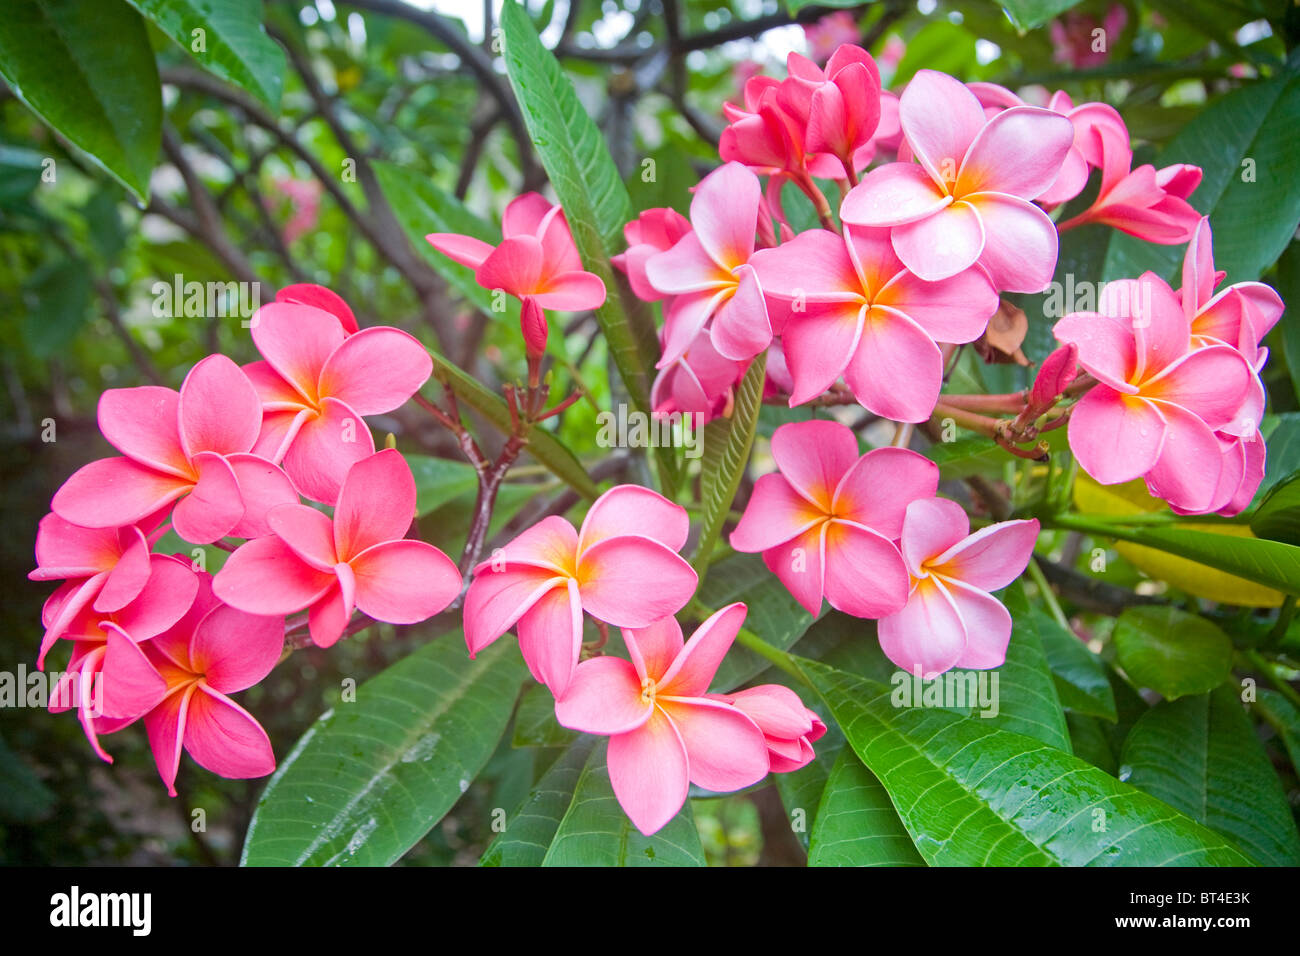 Frangipani or plumeria flowers of the species plumeria rubra stock frangipani or plumeria flowers of the species plumeria rubra dhlflorist Gallery